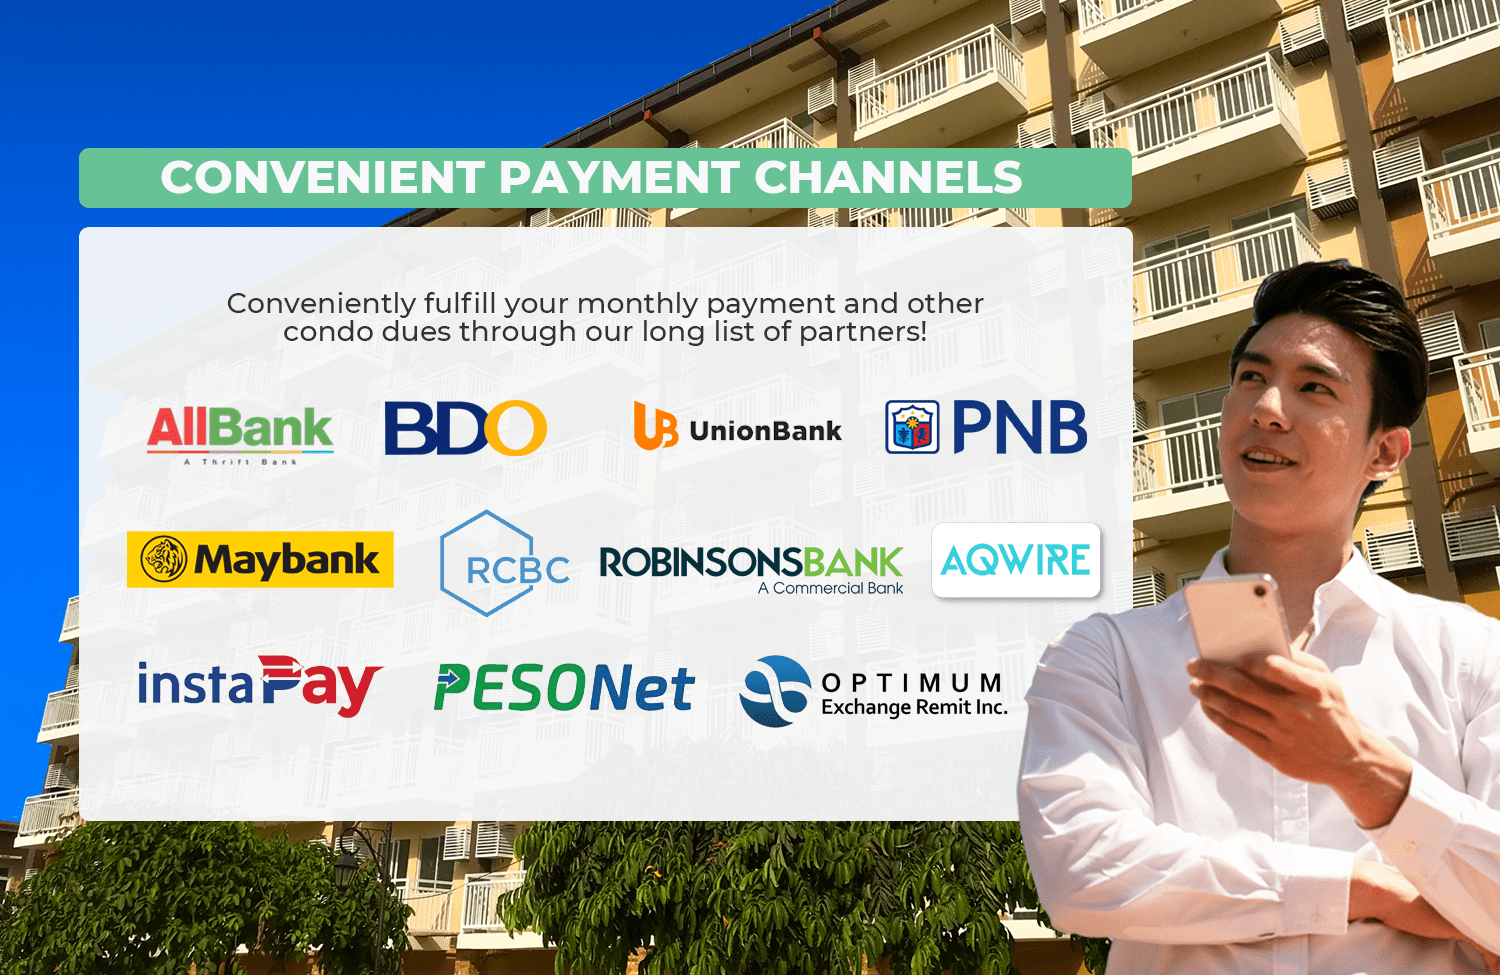 Payment Channels of Camella Manors - Condo in the Philippines